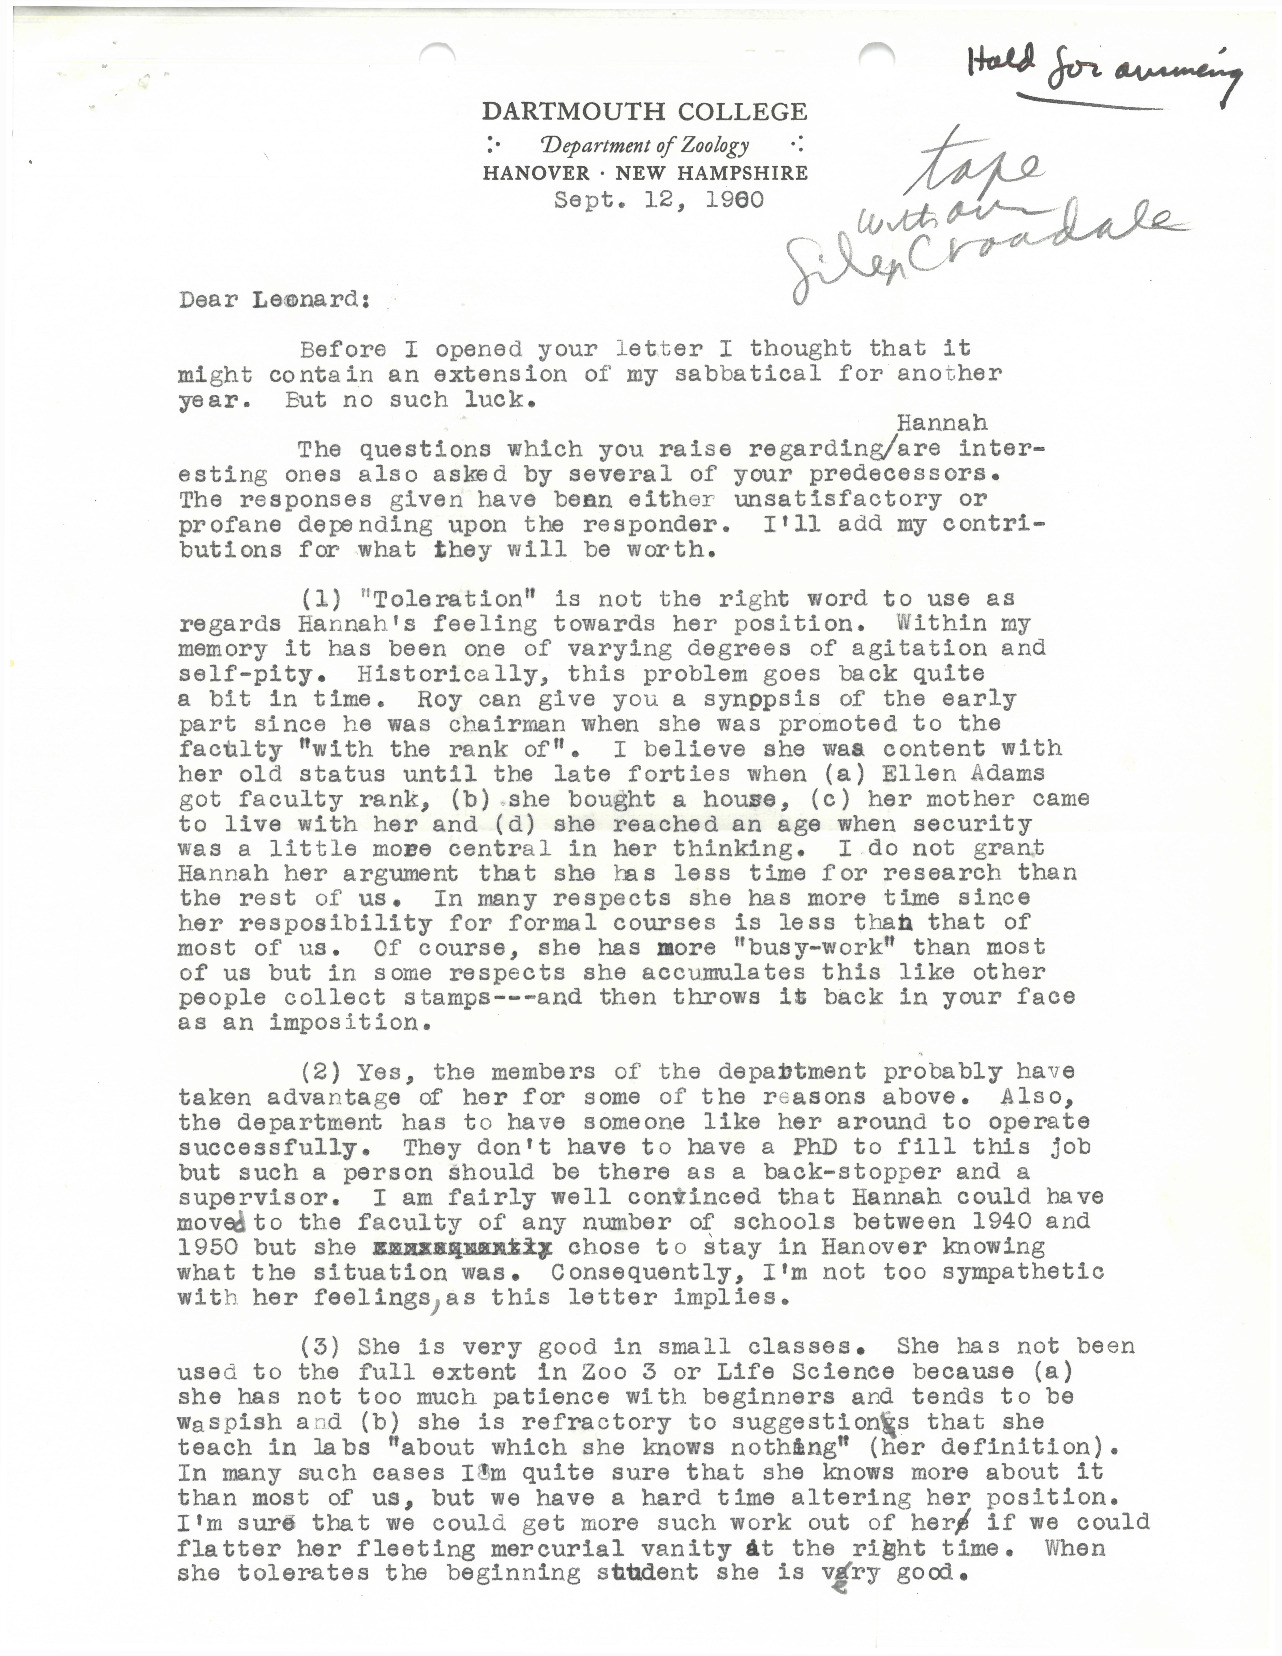 "Replies to Rieser's inquiries about Prof. Croasdale's situation in the Zoology Department ranged from sympathetic to dismissive, but this letter by Prof. J.H. Copenhaver is a strangely mixed bag. He writes that ""the members of the Department probably have taken advantage of her,"" but that because he was ""fairly well convinced that Hannah could have moved to the faculty of any number of schools between 1940 and 1950 but she chose to stay in Hanover knowing what the situation was,"" he was ""not too sympathetic with her feelings, as this letter implies."" Despite Copenhaver's more incendiary remarks about Croasdale's alleged ""fleeting mercurial vanity,"" he clearly finds her a brilliant scientist and later became one of Hannah's more vocal allies in the department."